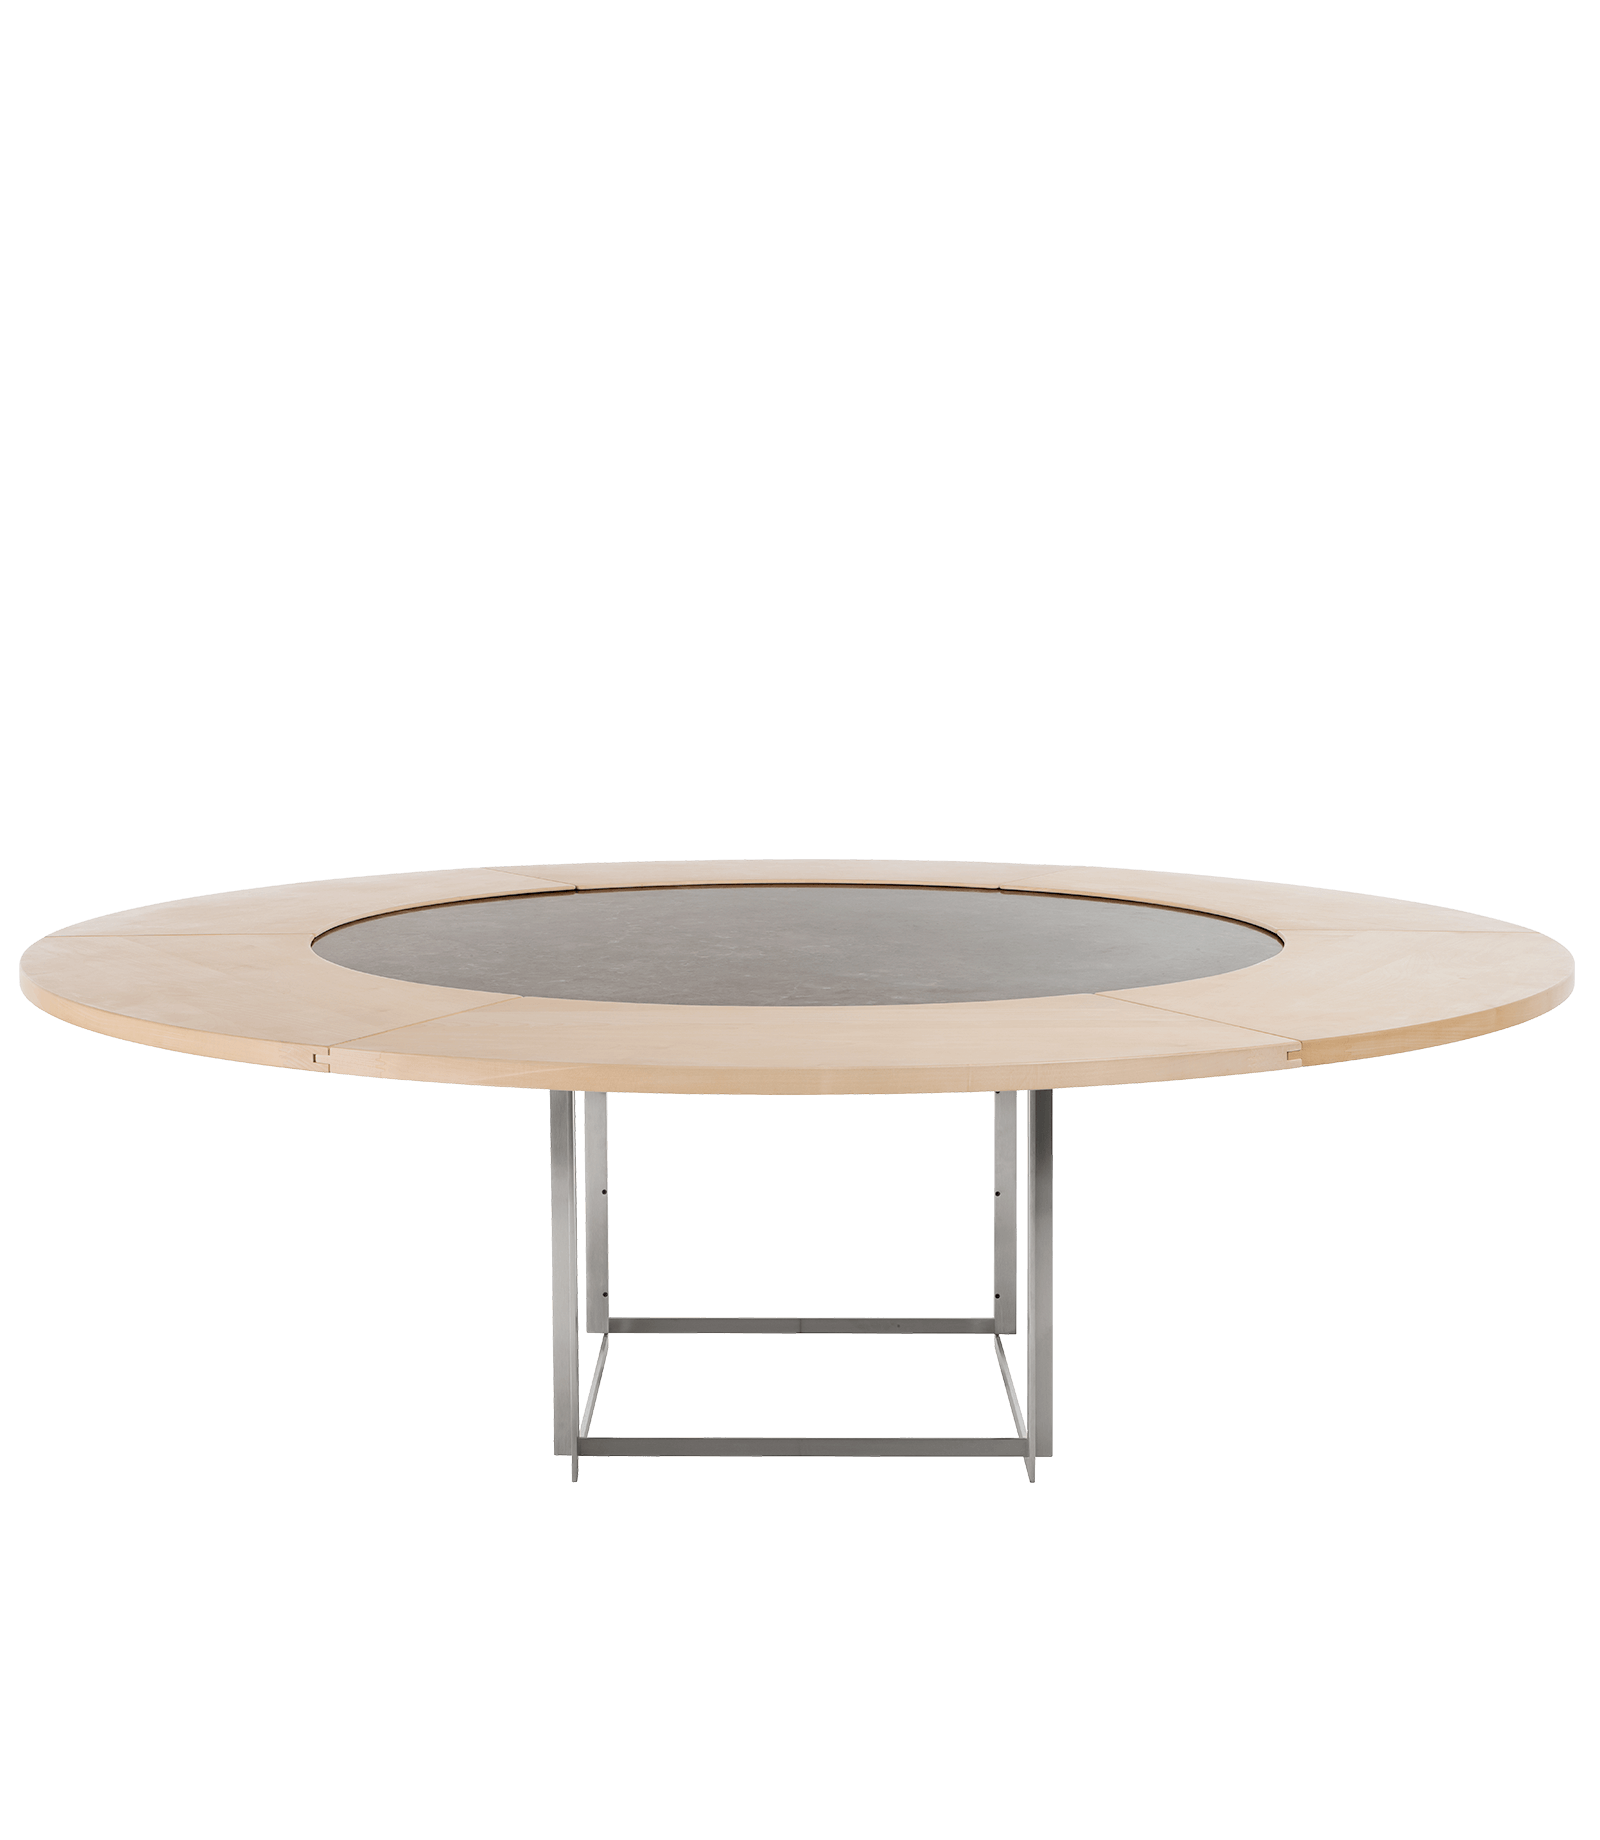 PK54/A  BY POUL KJAERHOLM  (SHOWN WITH EXTENSION RING)